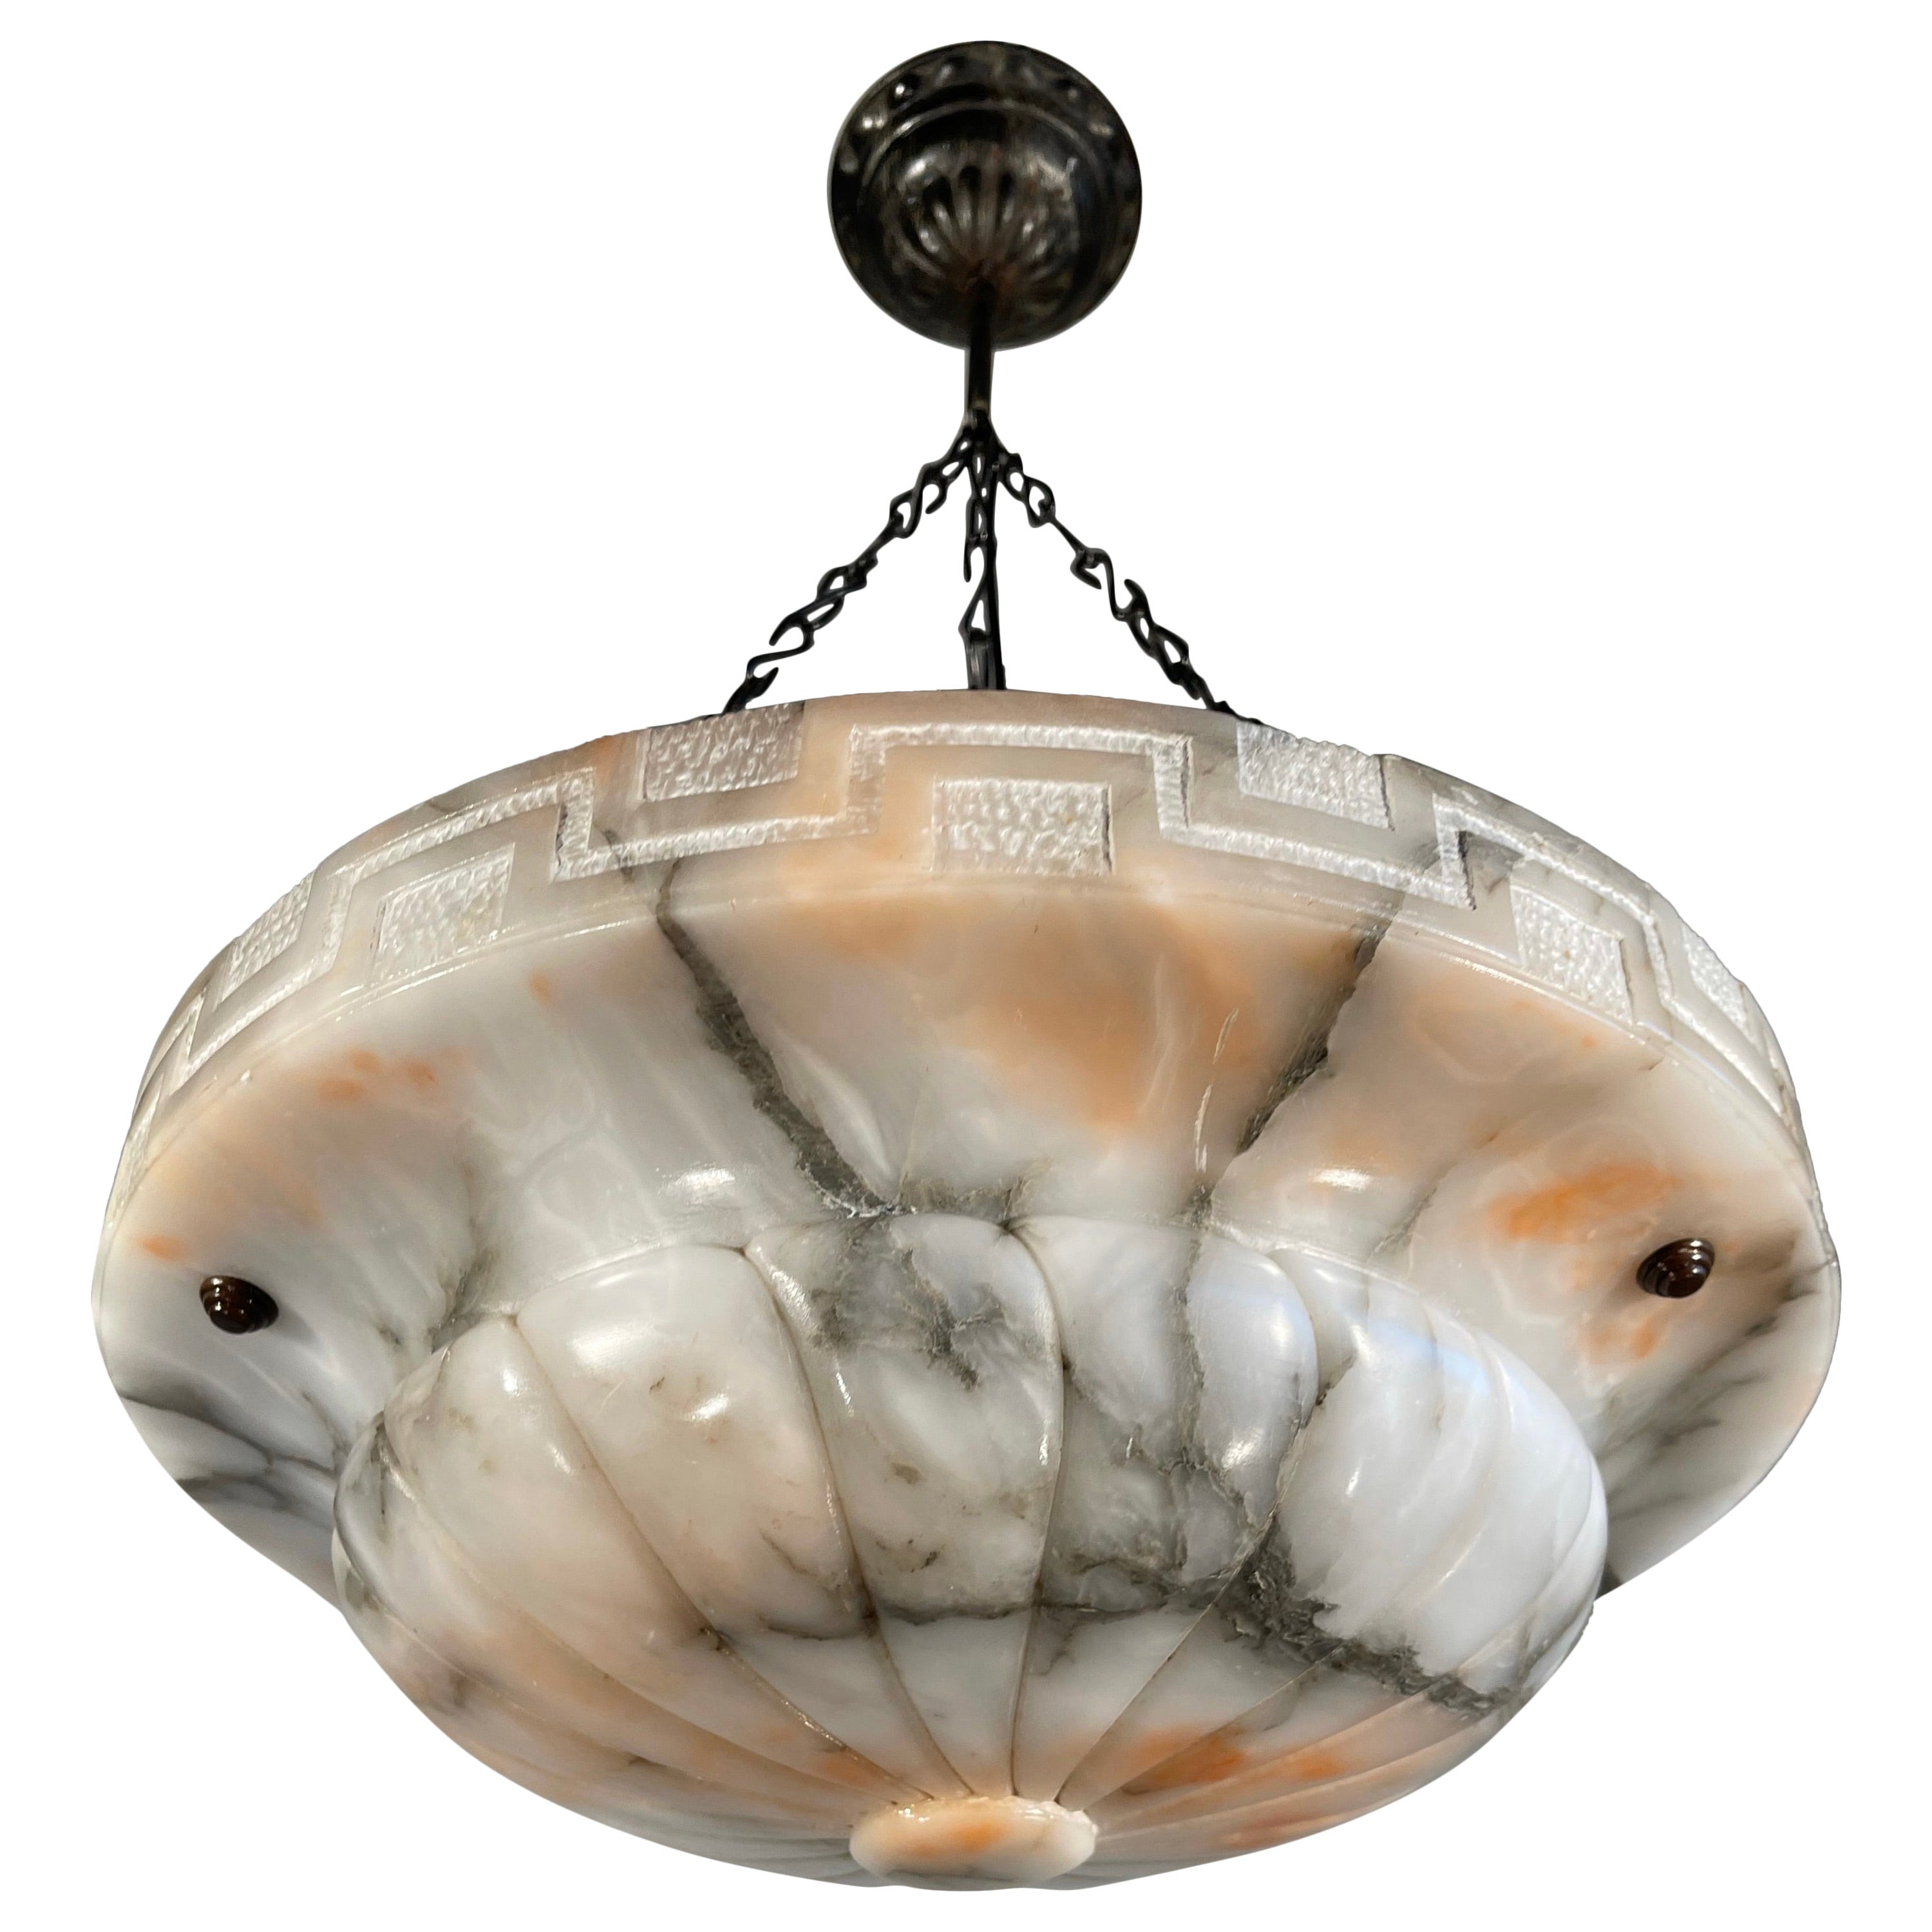 Antique White Alabaster Pendant Light with Black Veins and Amber Color Clouds